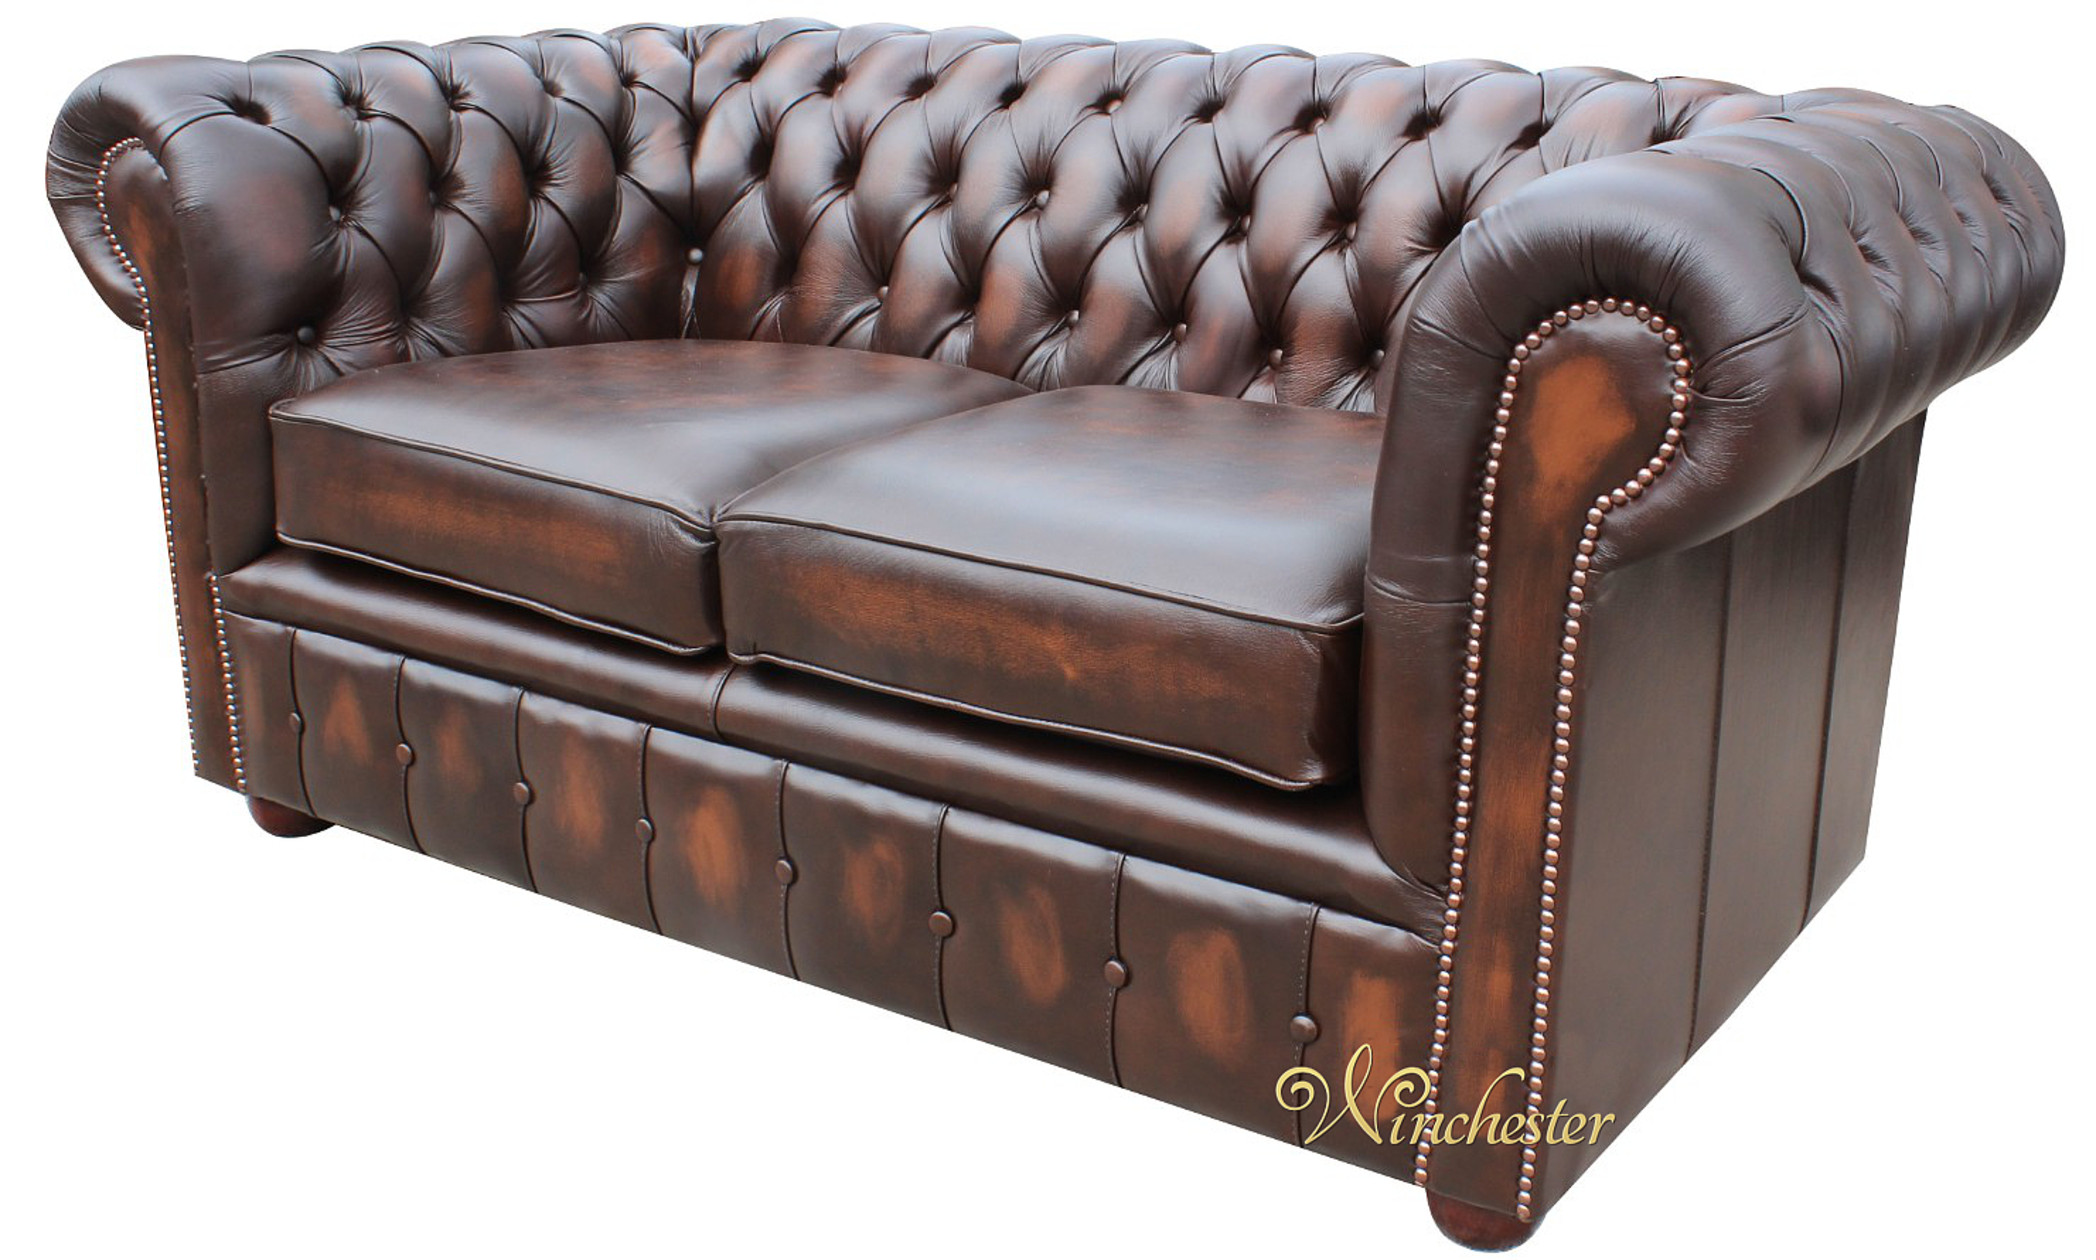 Chesterfield London 2 Seater Antique Brown Leather Sofa